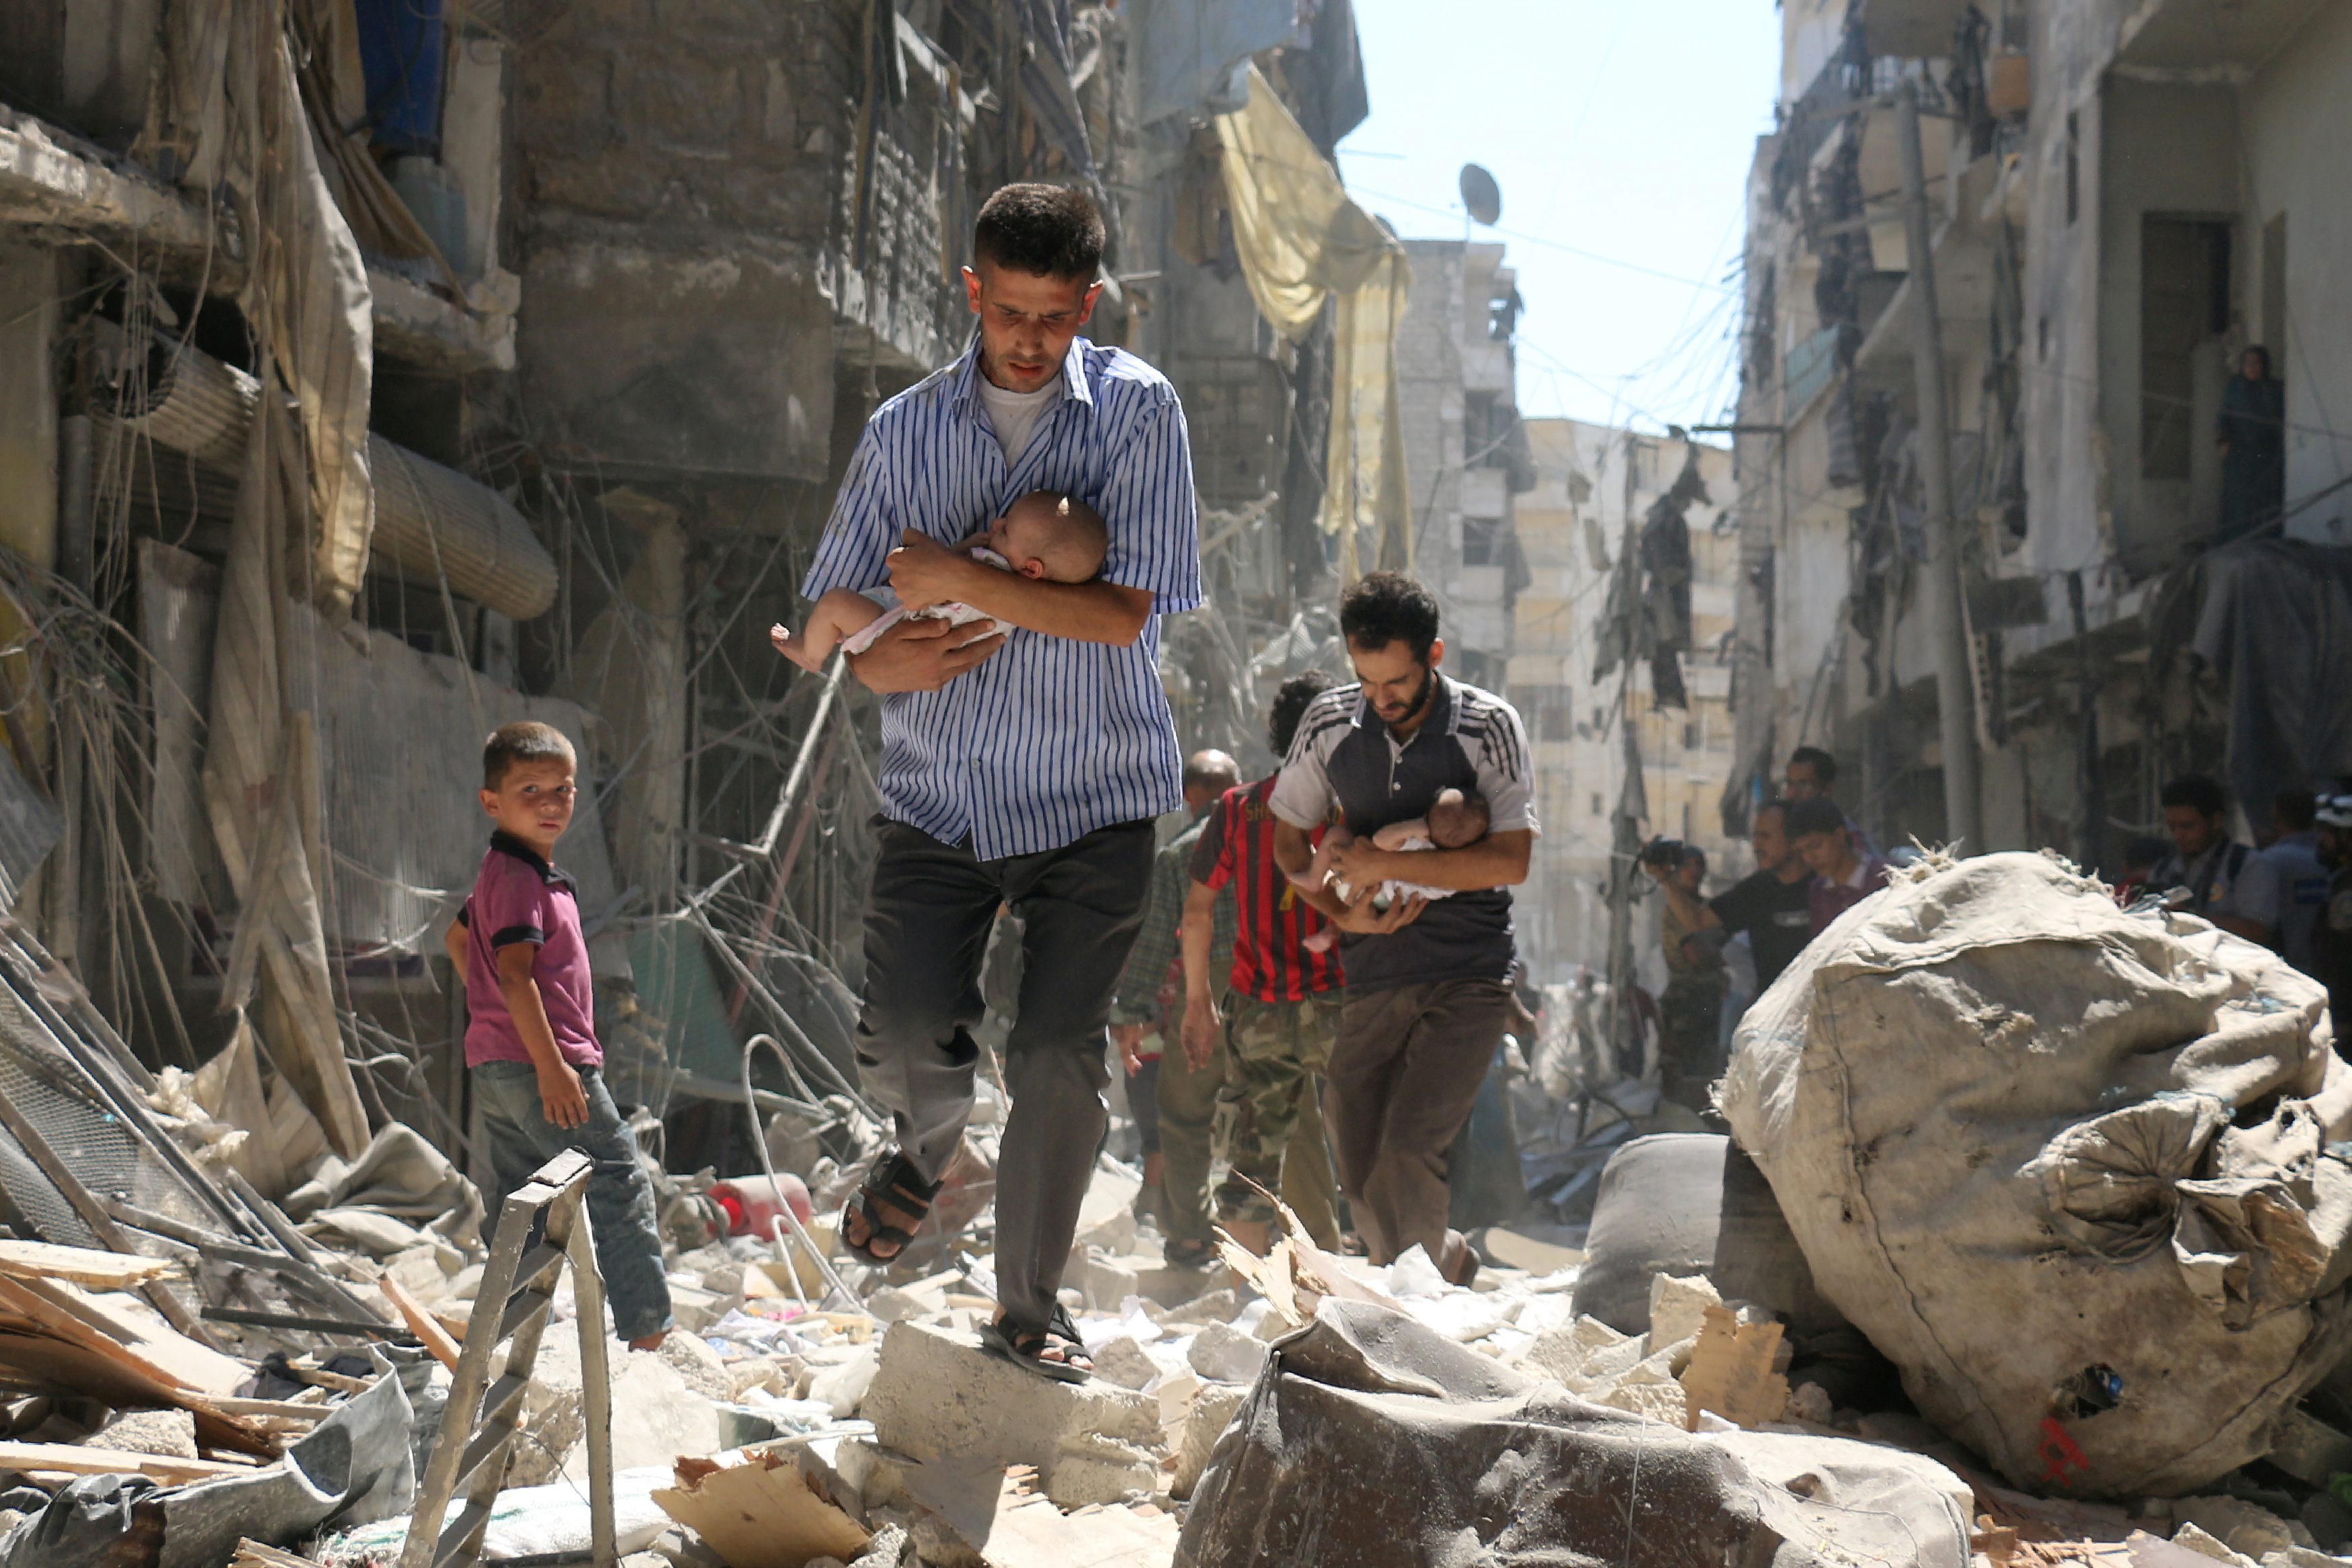 Syrian men carrying babies make their way through the rubble of destroyed buildings following a reported airstrike on the rebel-held Salihin neighborhood of Aleppo on 11 September 2016. Airstrikes have killed dozens in rebel-held parts of Syria as the opposition considers whether to join a US-Russia truce deal due to take effect on 12 September. Ameer Alhalbi, Agence France-Presse/Courtesy of World Press Photo Foundation/Handout via REUTERS   THIS IMAGE HAS BEEN SUPPLIED BY A THIRD PARTY. FOR EDITORIAL USE ON WORLD PRESS PHOTO ONLY. NO RESALES. NO CROPPING